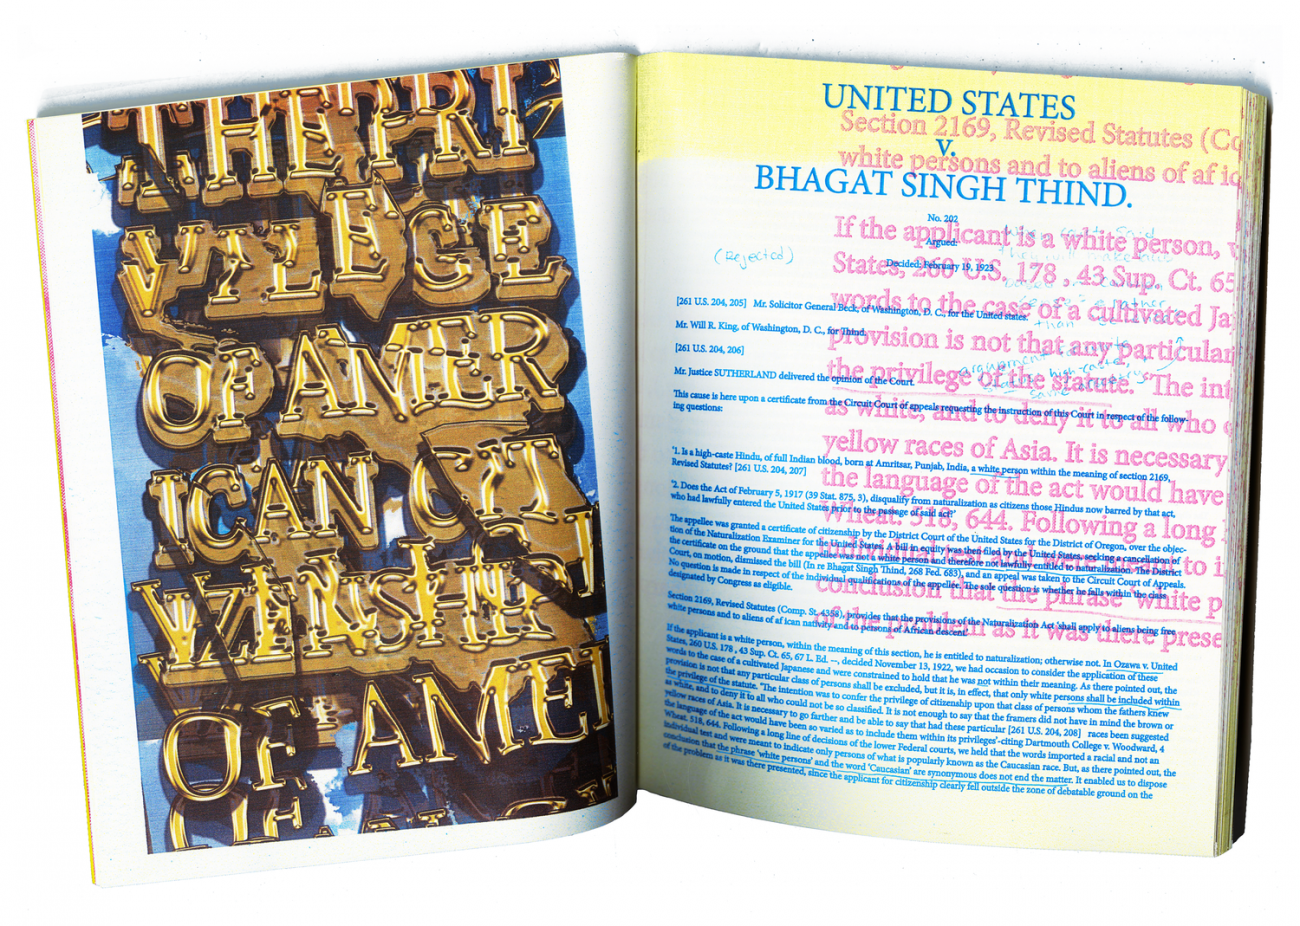 Image detail of artist book made by artist Kimi Hanauer showing the book lying open. The right hand page is collaged image of broken text. The left hand side is a collage of text prominently featuring the first page of a legal document from The United States v. Bhagat Singh Thind.